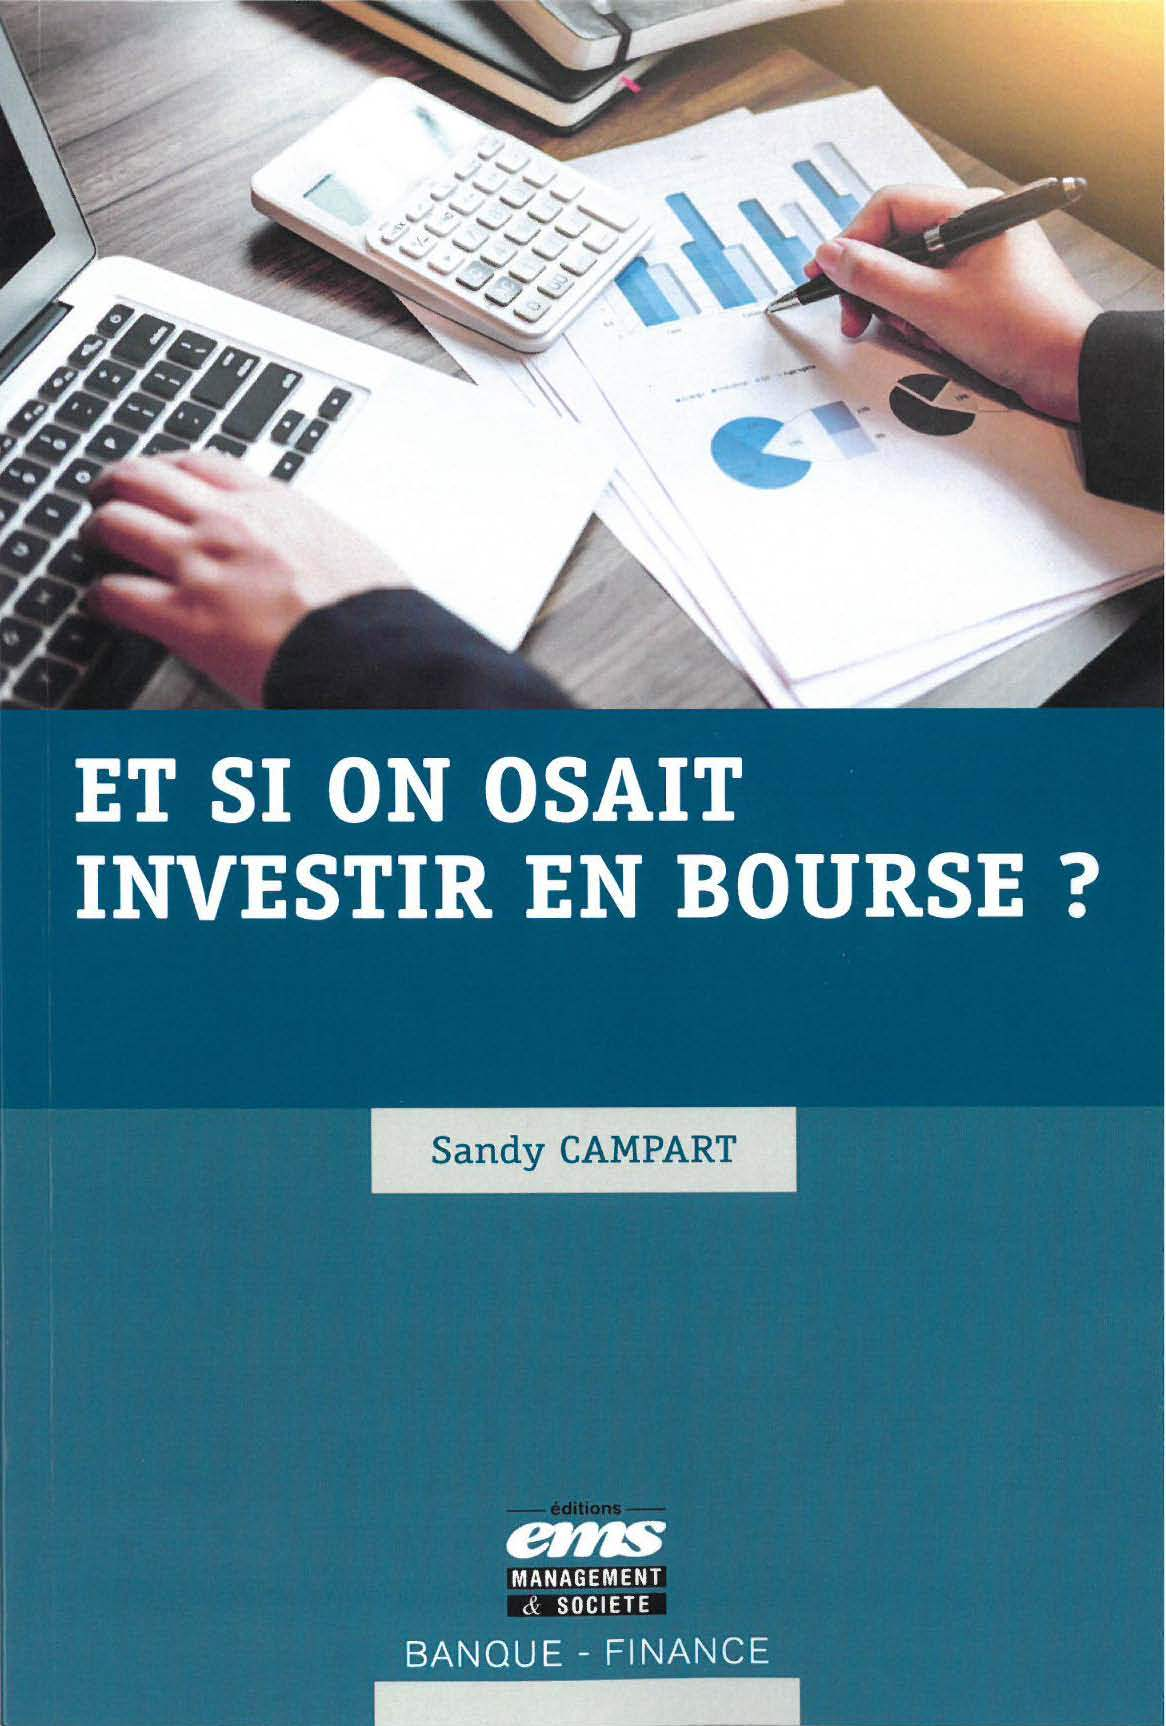 et si on osait investir en Bourse